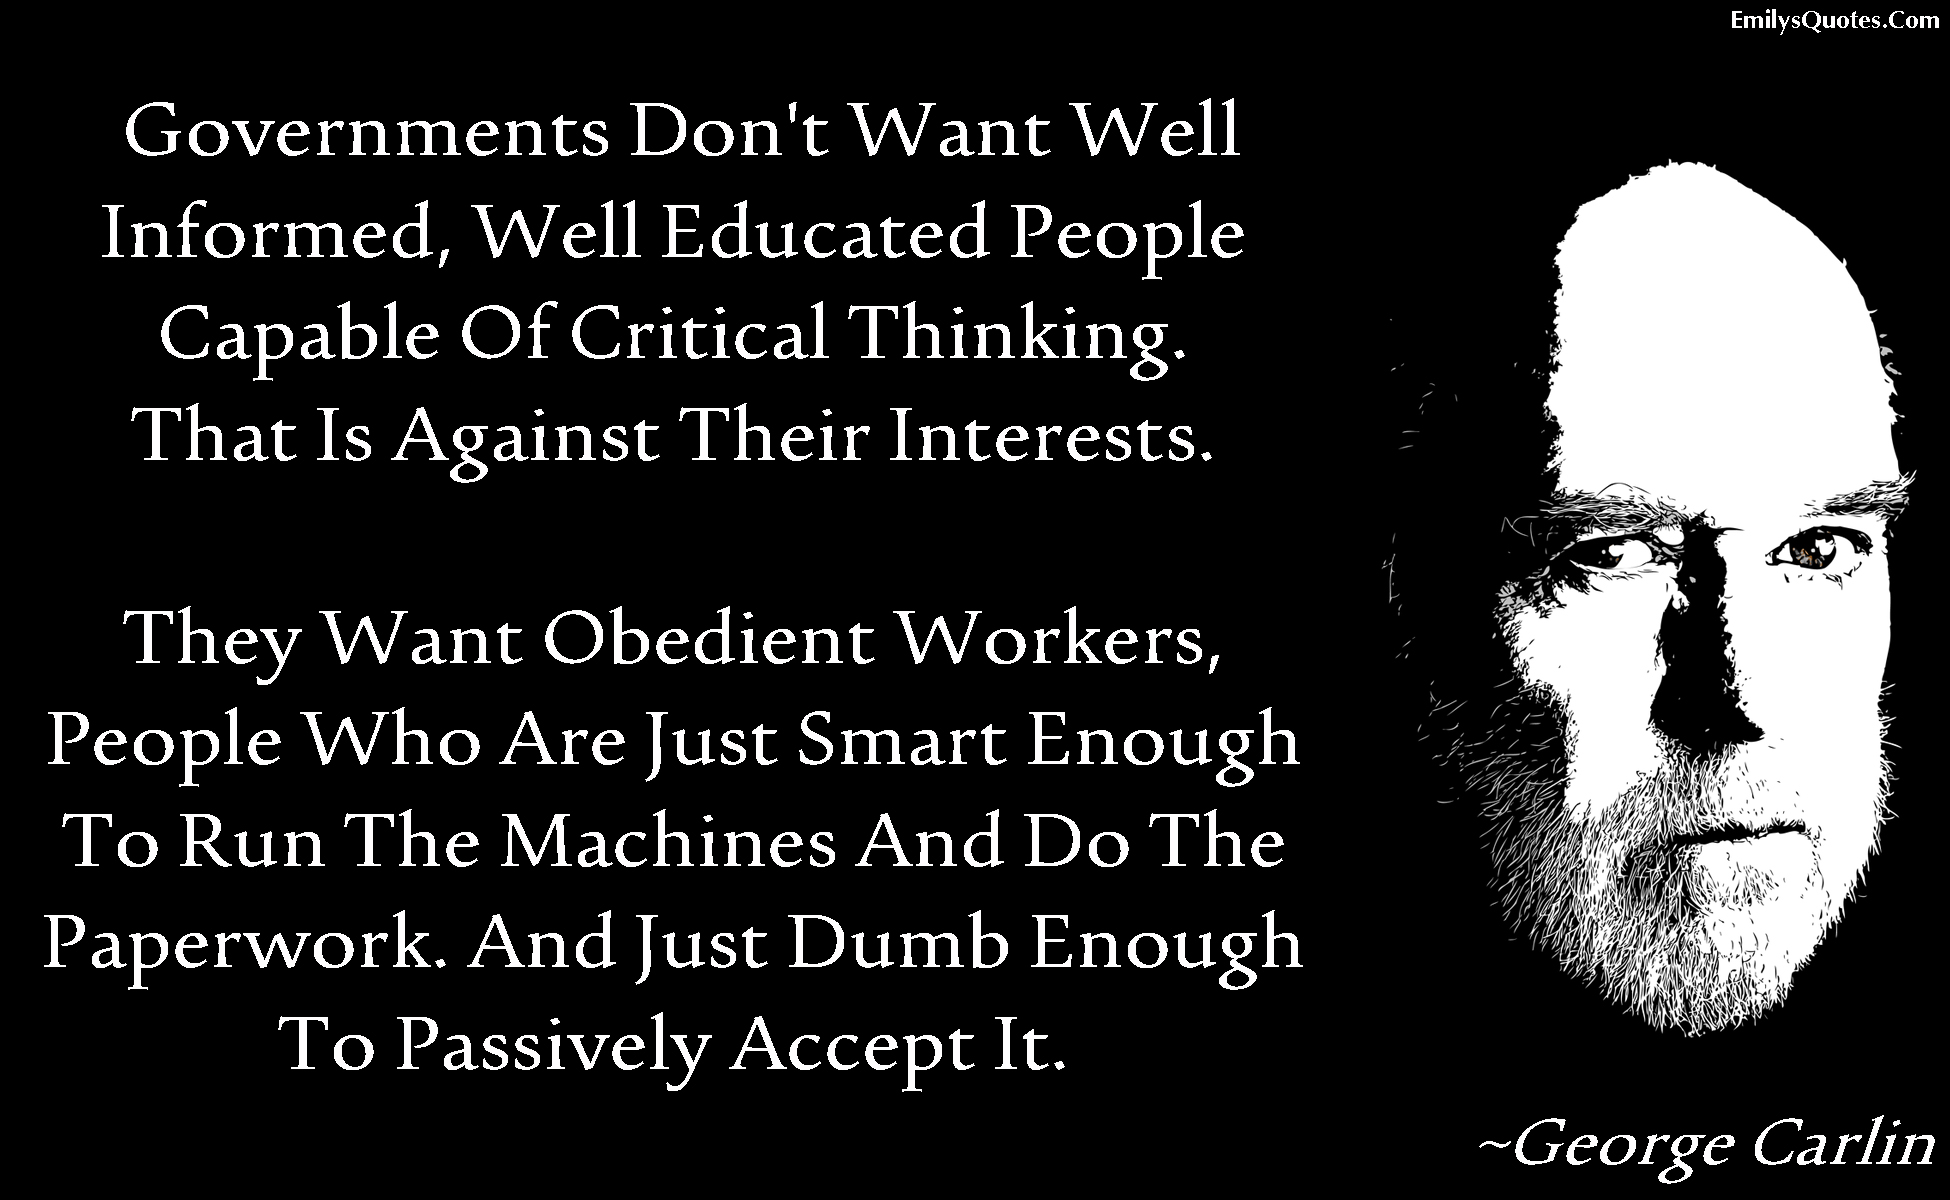 Quotes About Critical Thinking Governments Don't Want Well Informed Well Educated People Capable